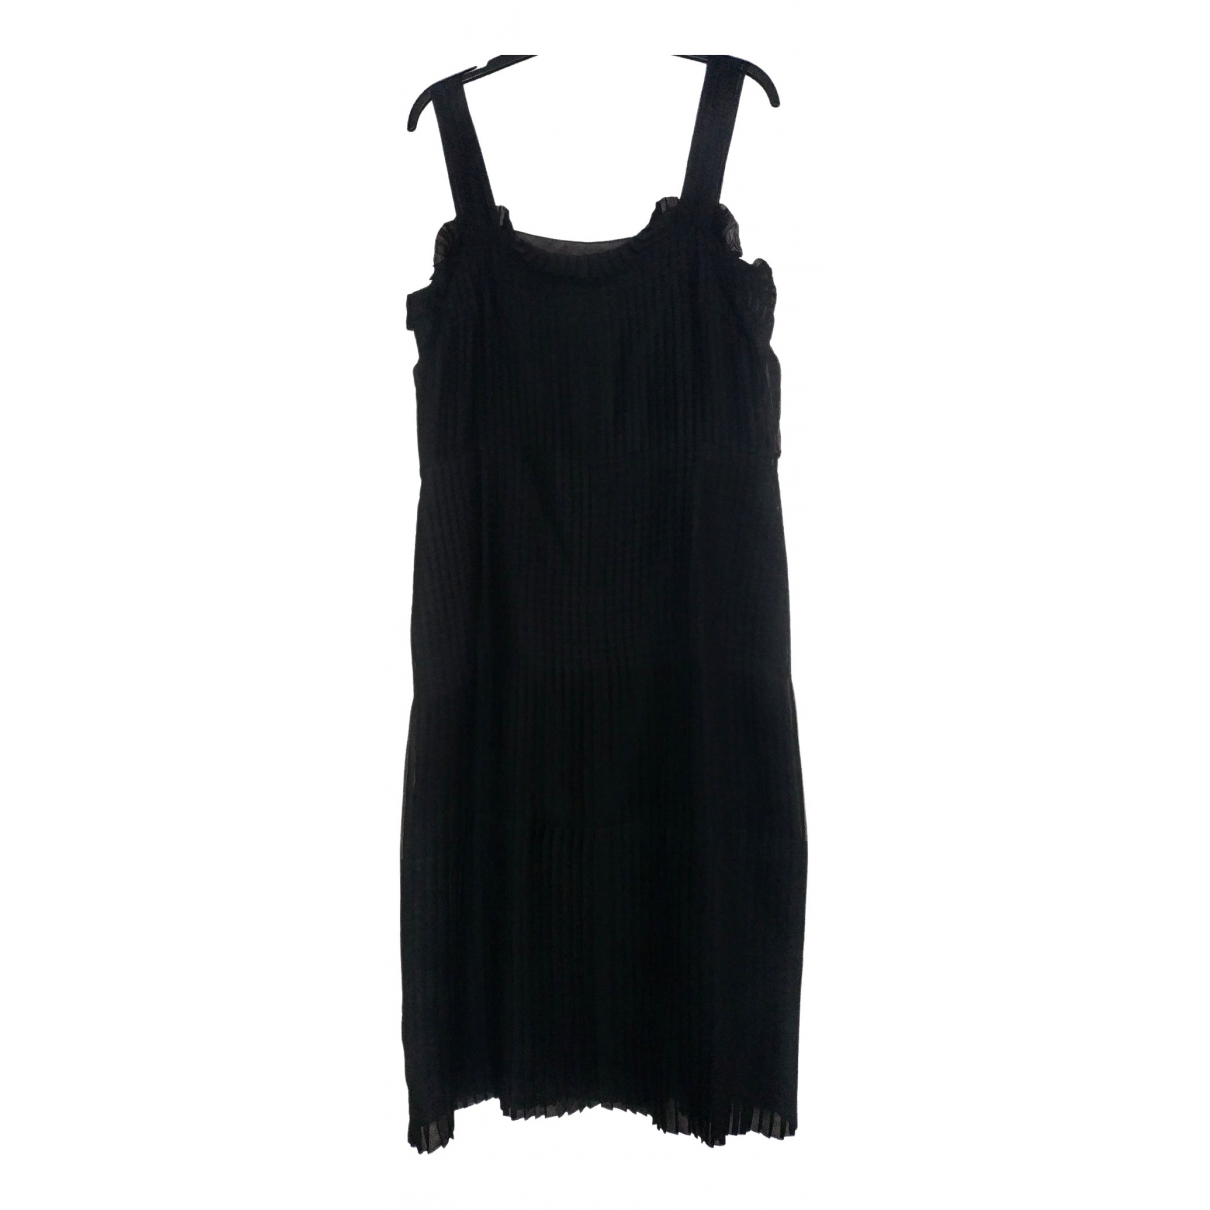 Marni \N Black Silk dress for Women 40 IT